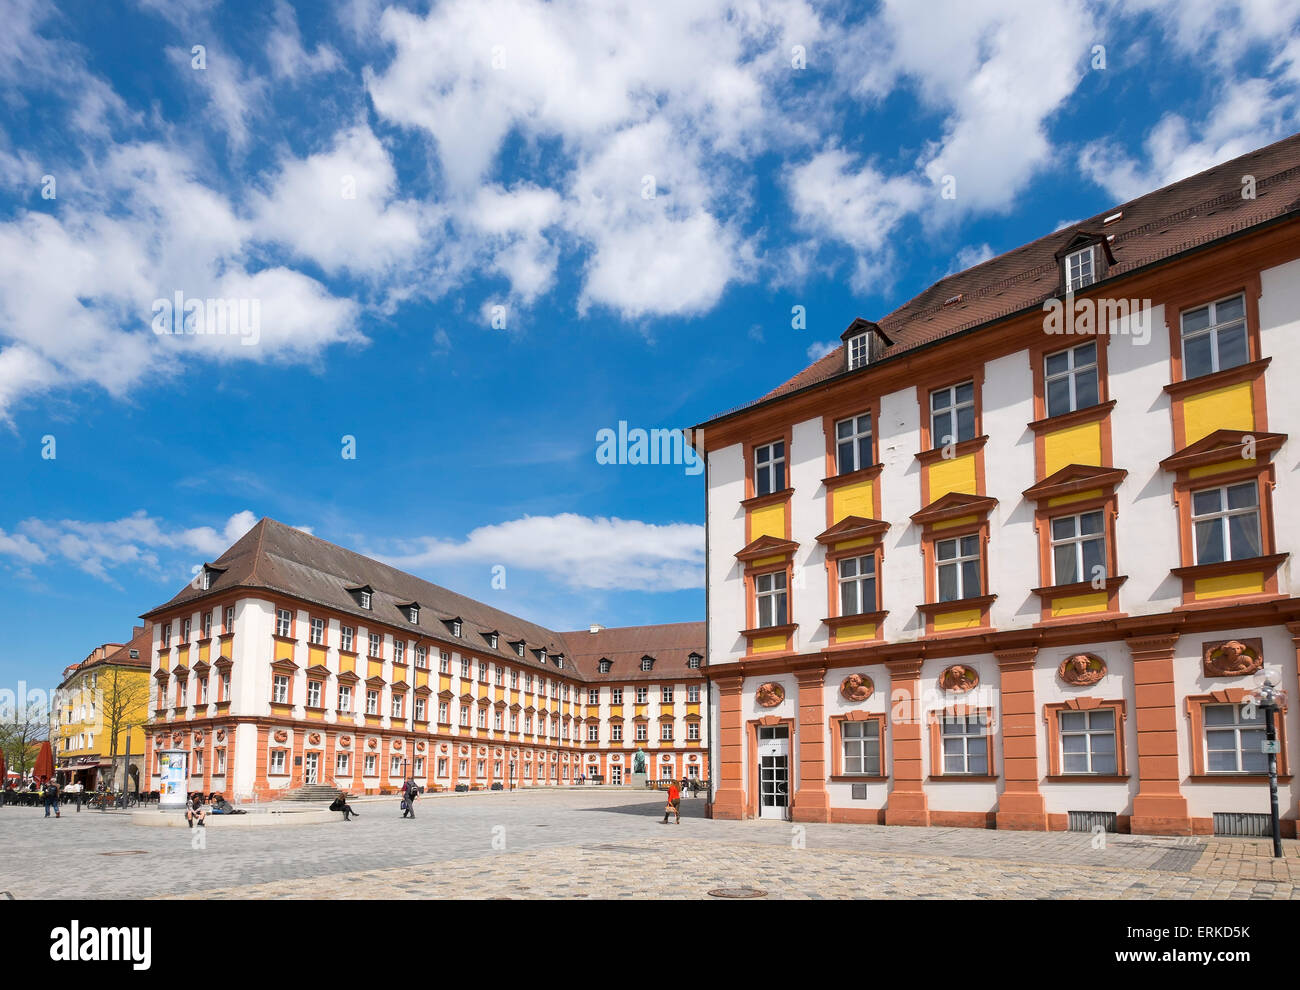 Courtyard of the old castle, historic centre, Bayreuth, Upper Franconia, Franconia, Bavaria, Germany - Stock Image